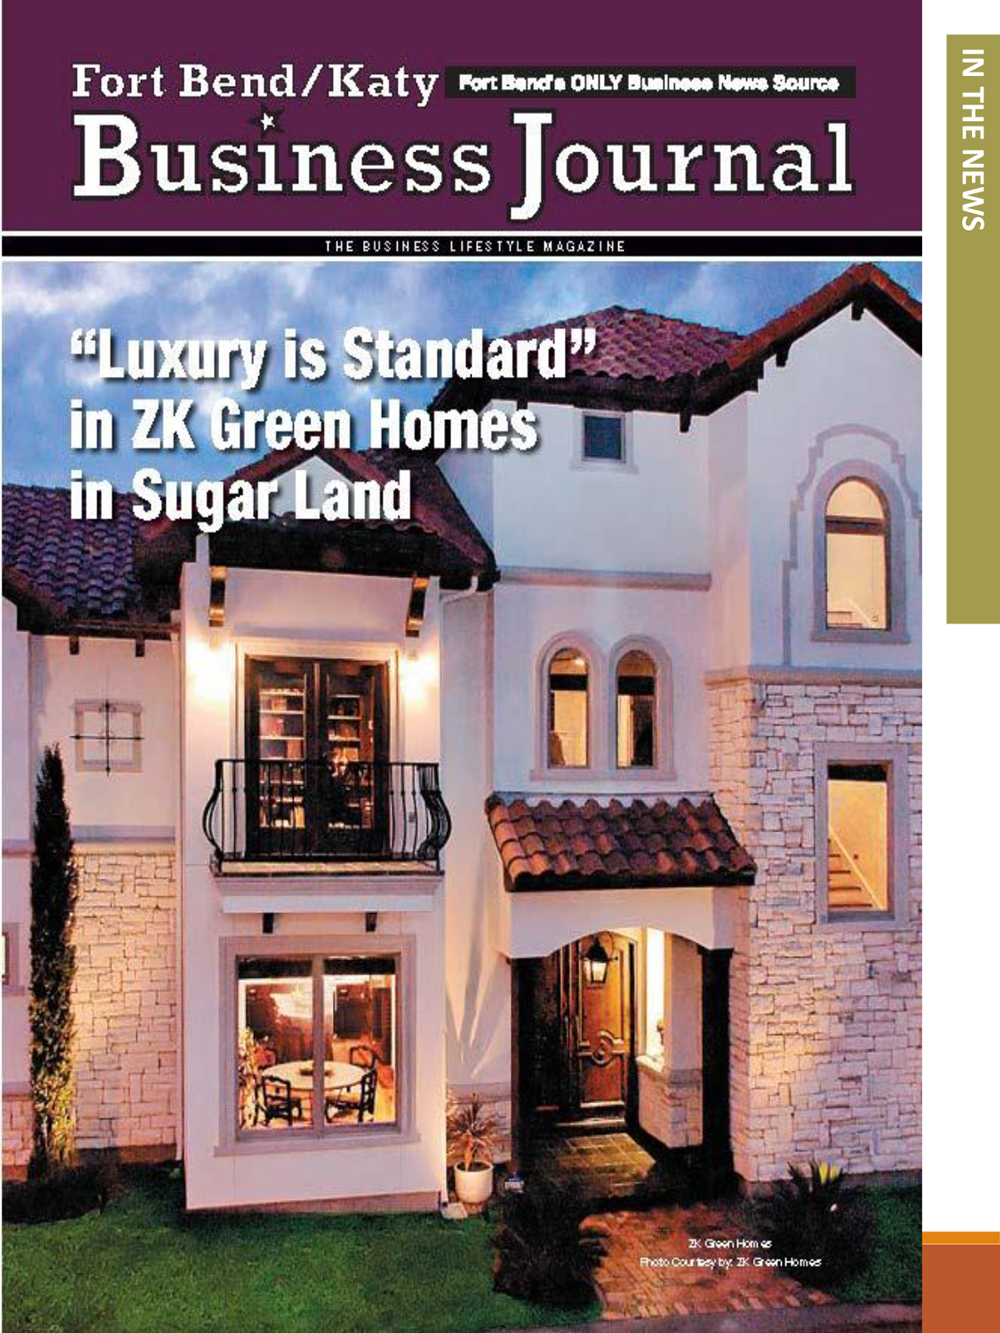 Luxury-is-Standard-in-ZK-Green-Homes-in-Sugar-Land